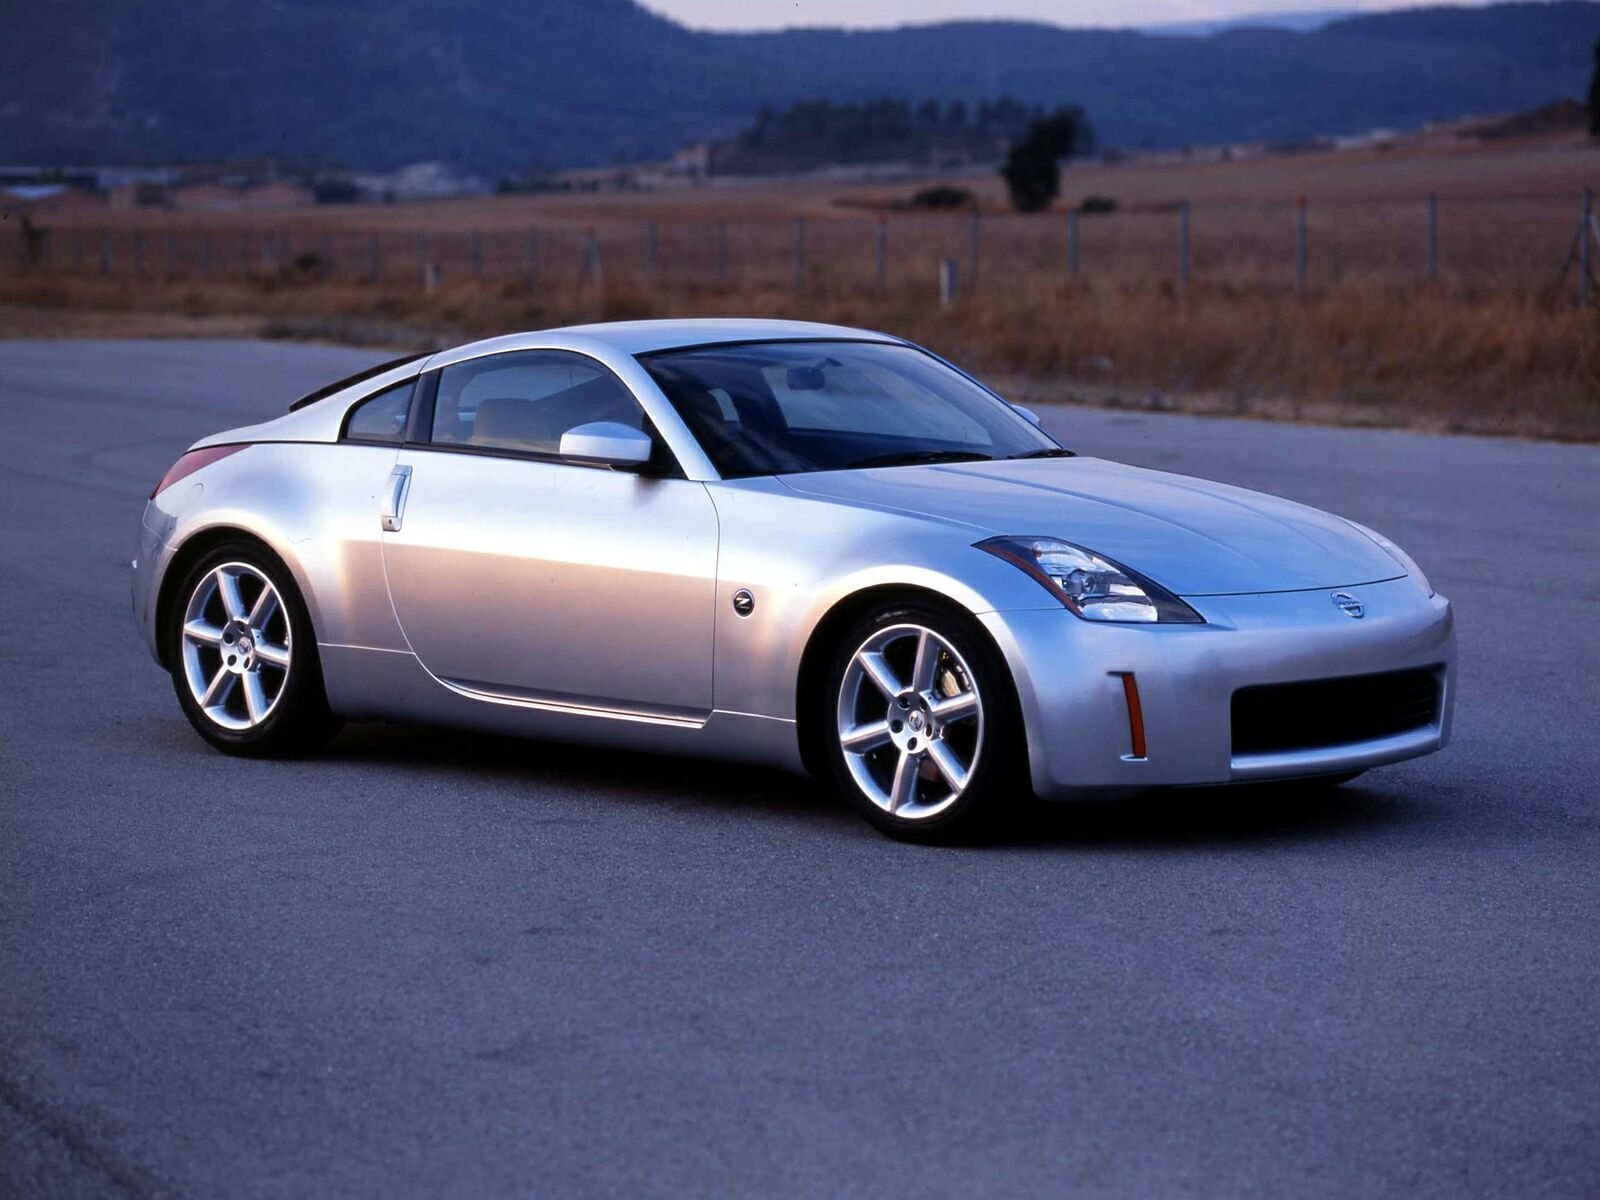 2005 Nissan 350Z Review - Top Speed